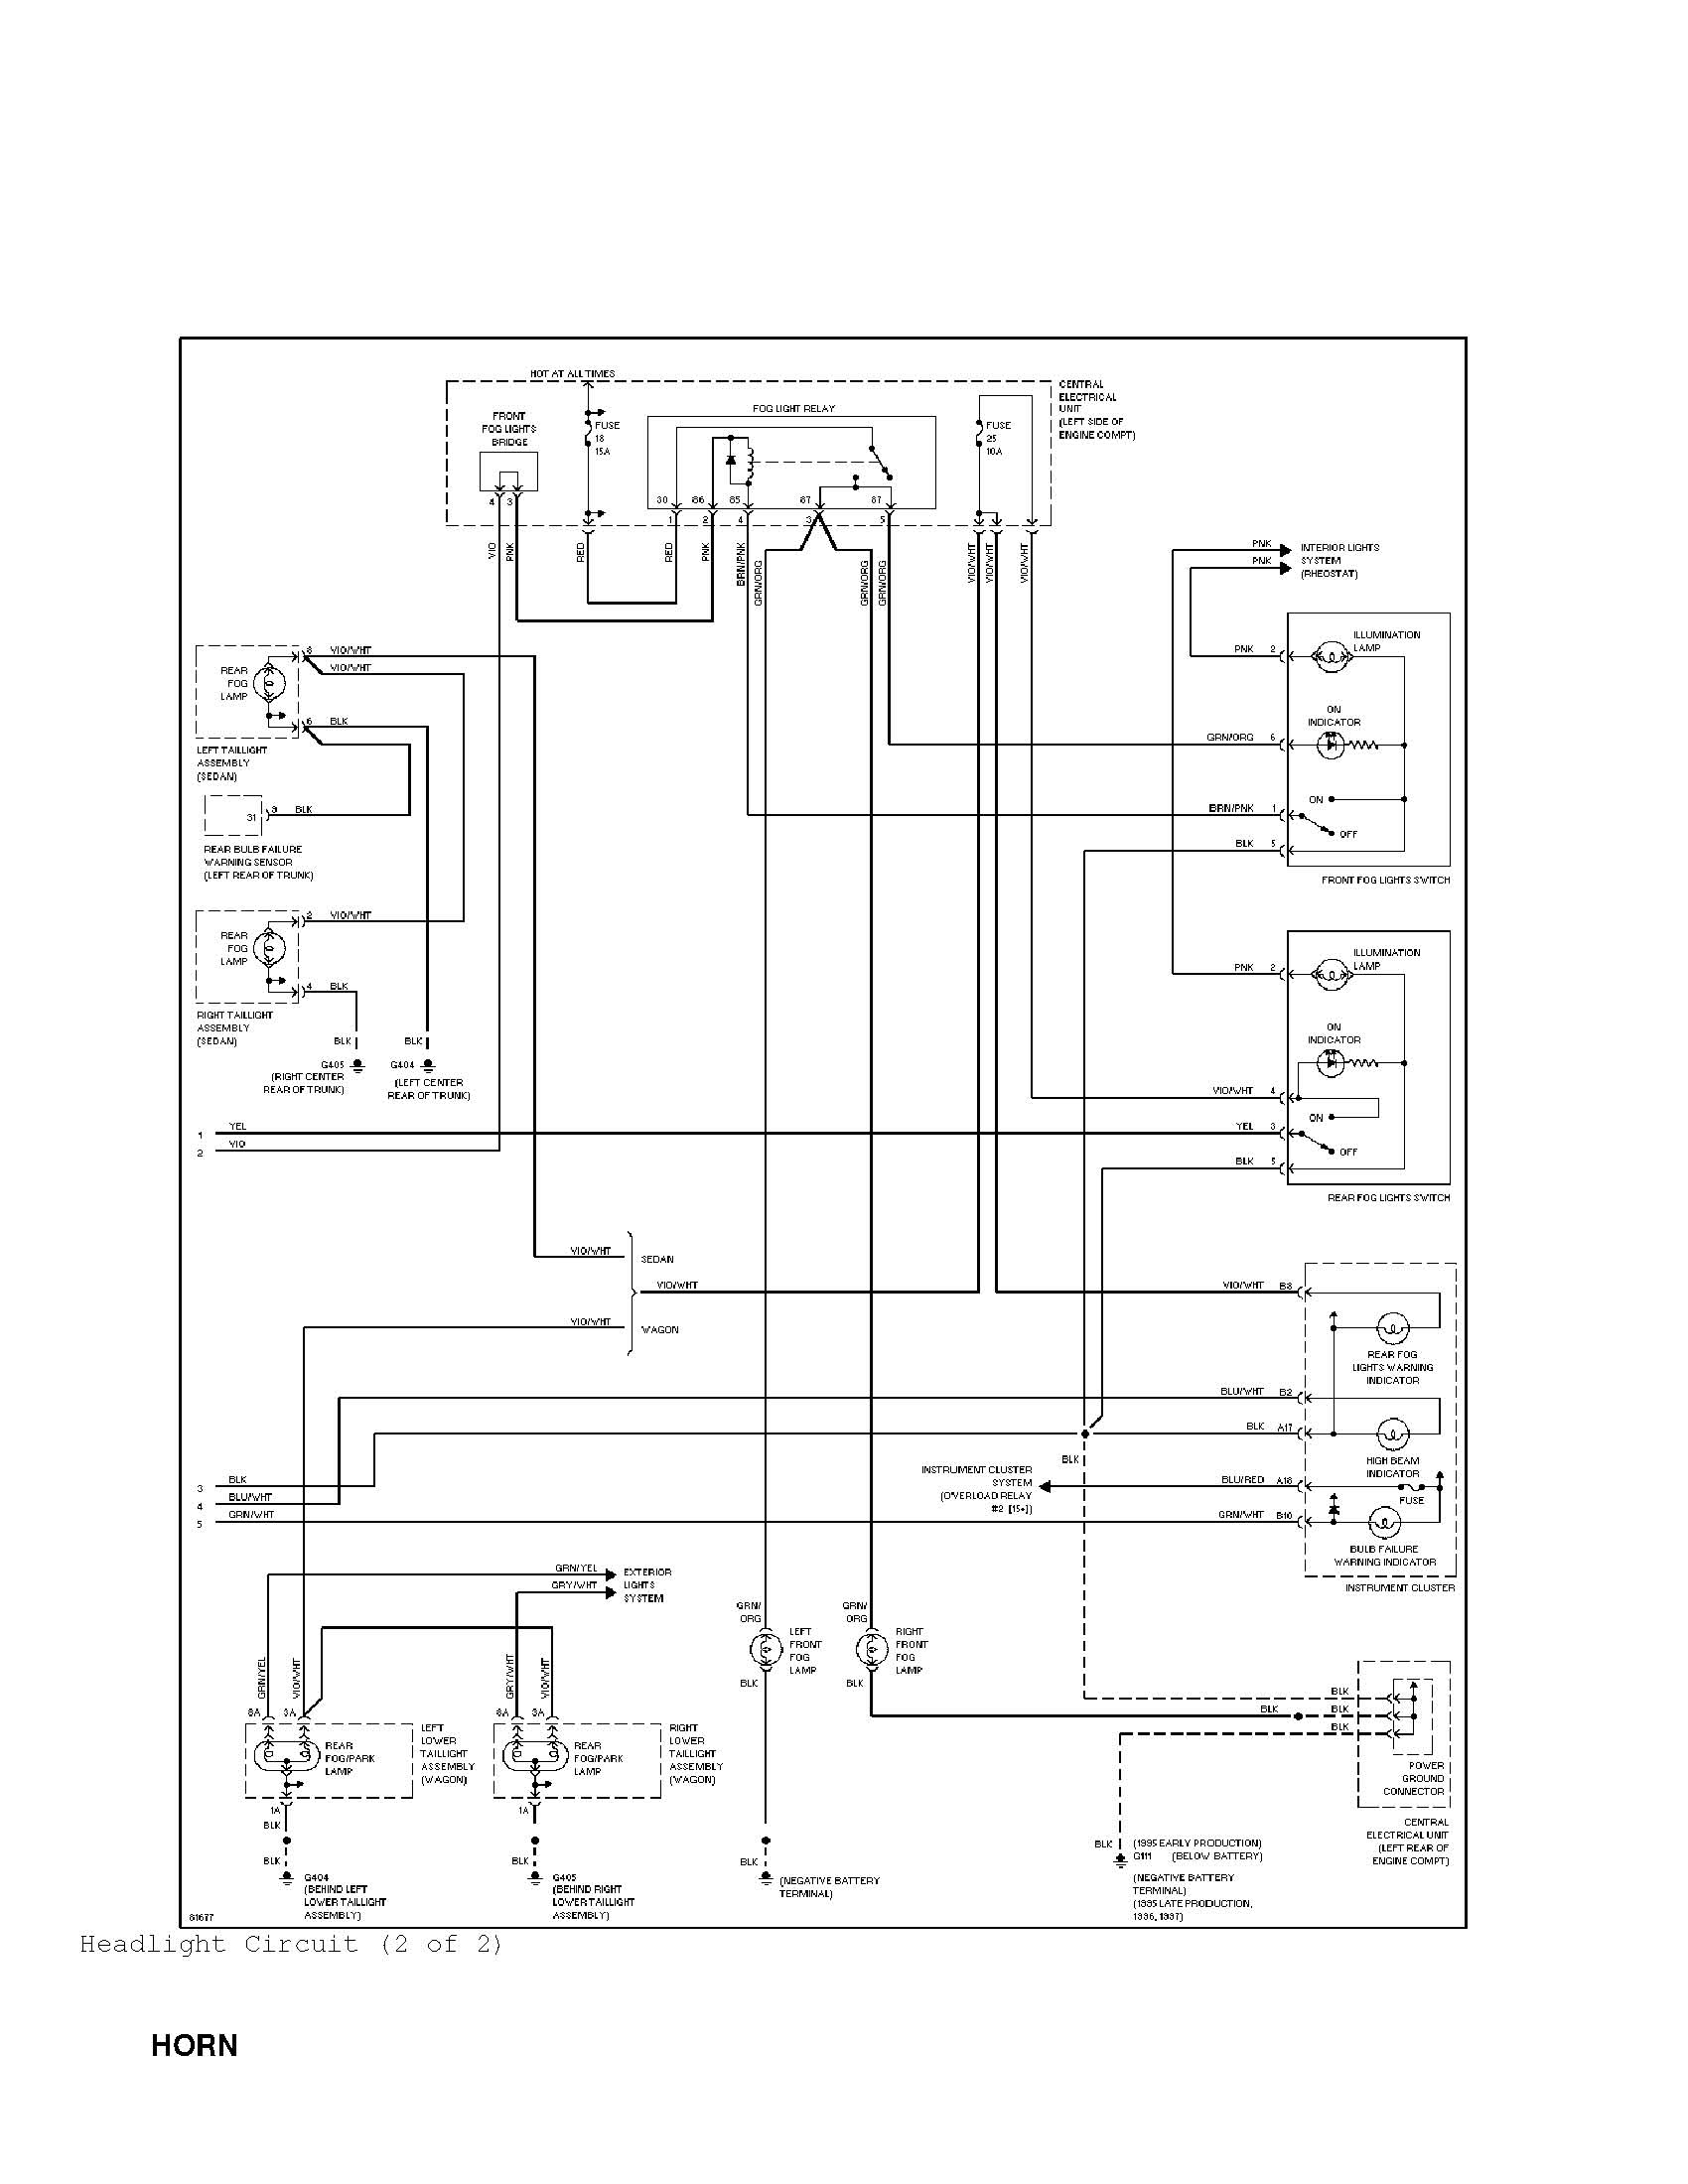 Volvo 850 Headlight Wiring Diagram Real Electrical V70 Fog Light Harness Relays 1993